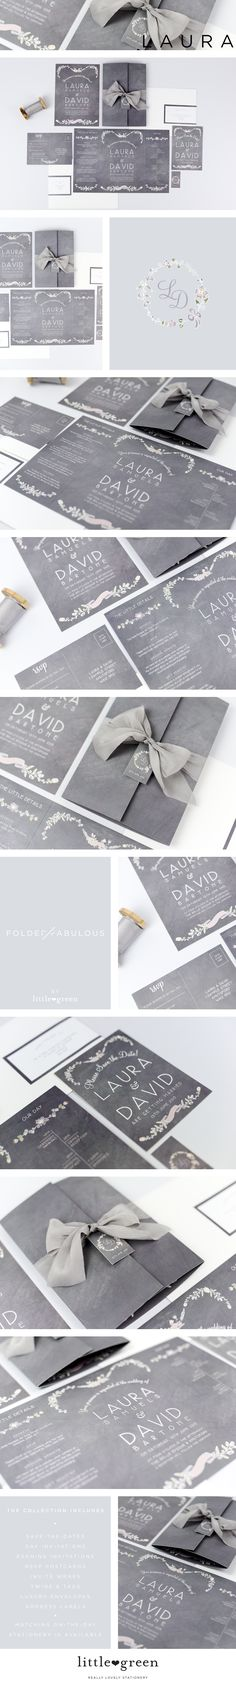 The Perfect Wedding Invitation Wedding 2017, Wedding Themes, Wedding Designs, Wedding Cards, Wedding Colors, Wedding Planner, Our Wedding, Dream Wedding, Wedding Stationary